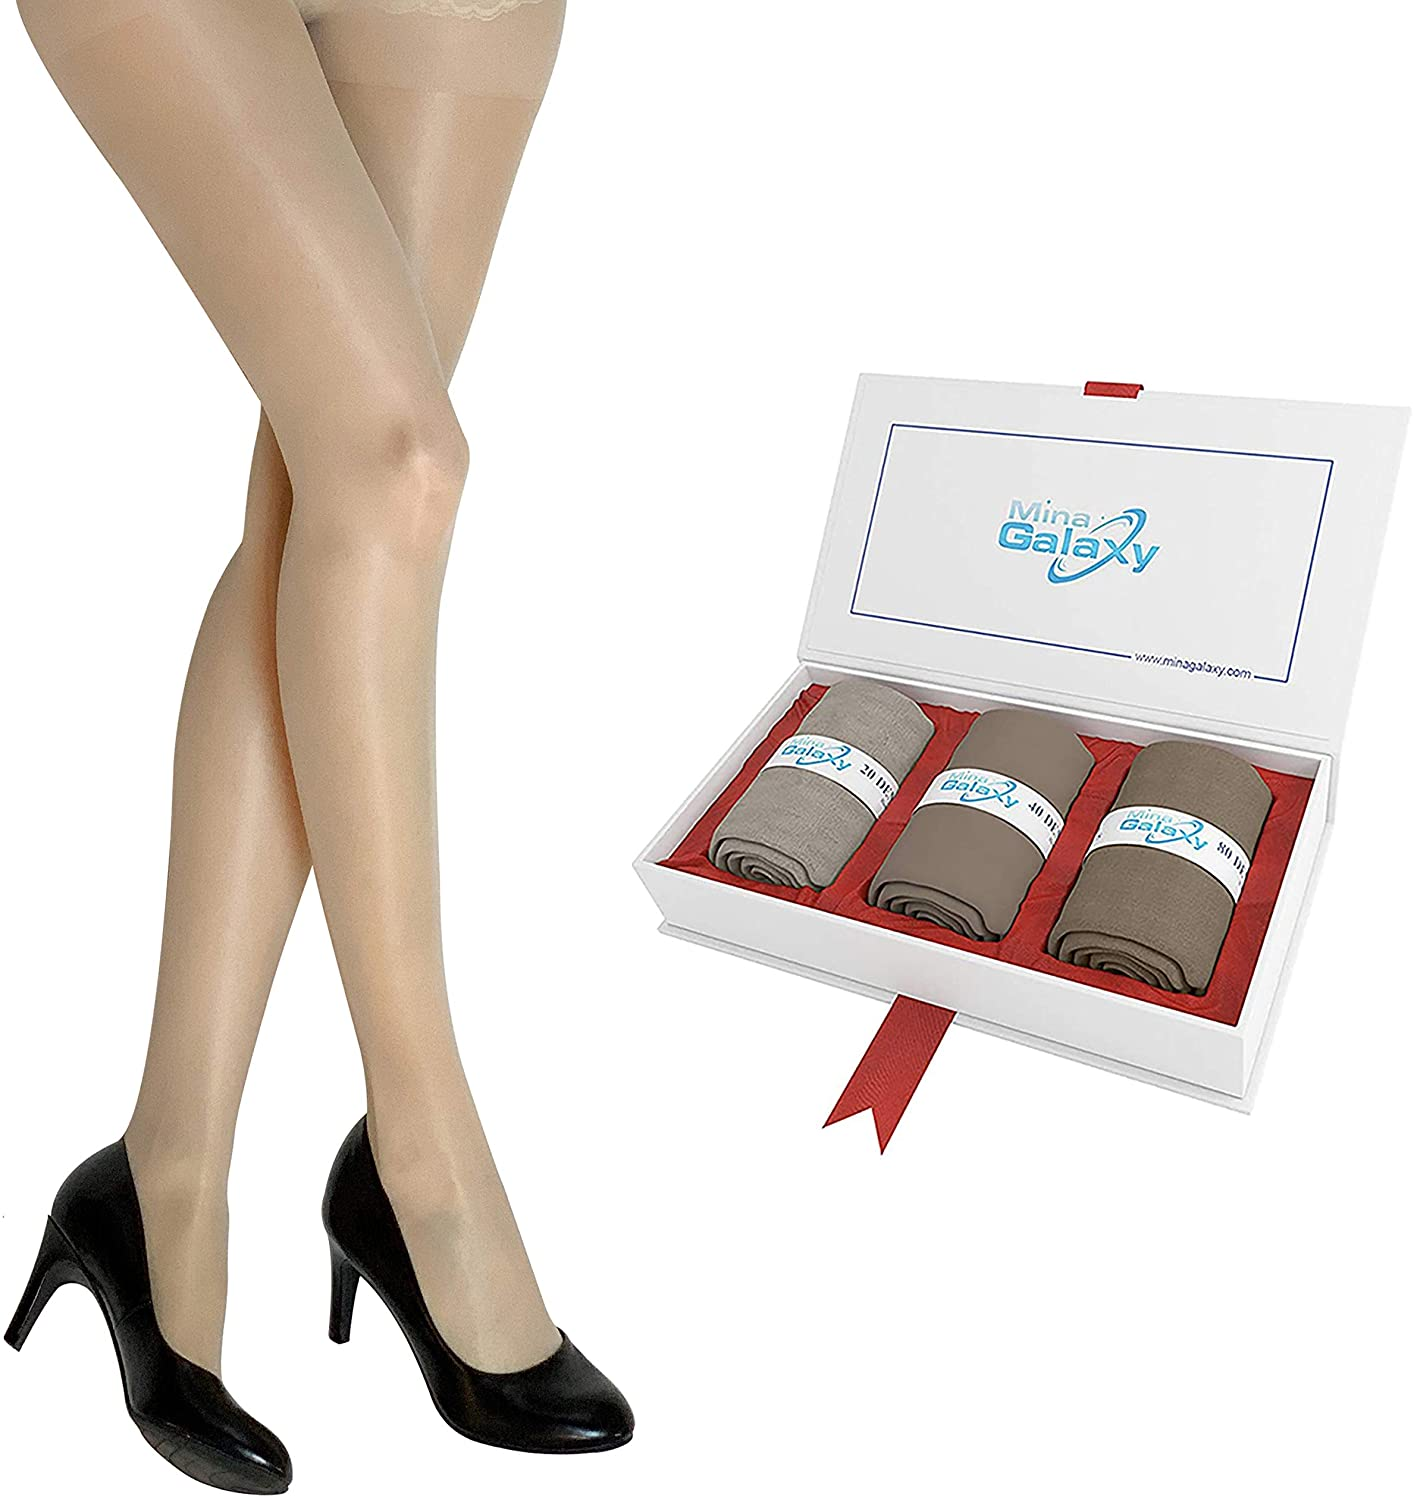 3 Pairs Pantyhose for Women(sheer/opaque/super opaque) with Control Top in a lovely Gift Box.